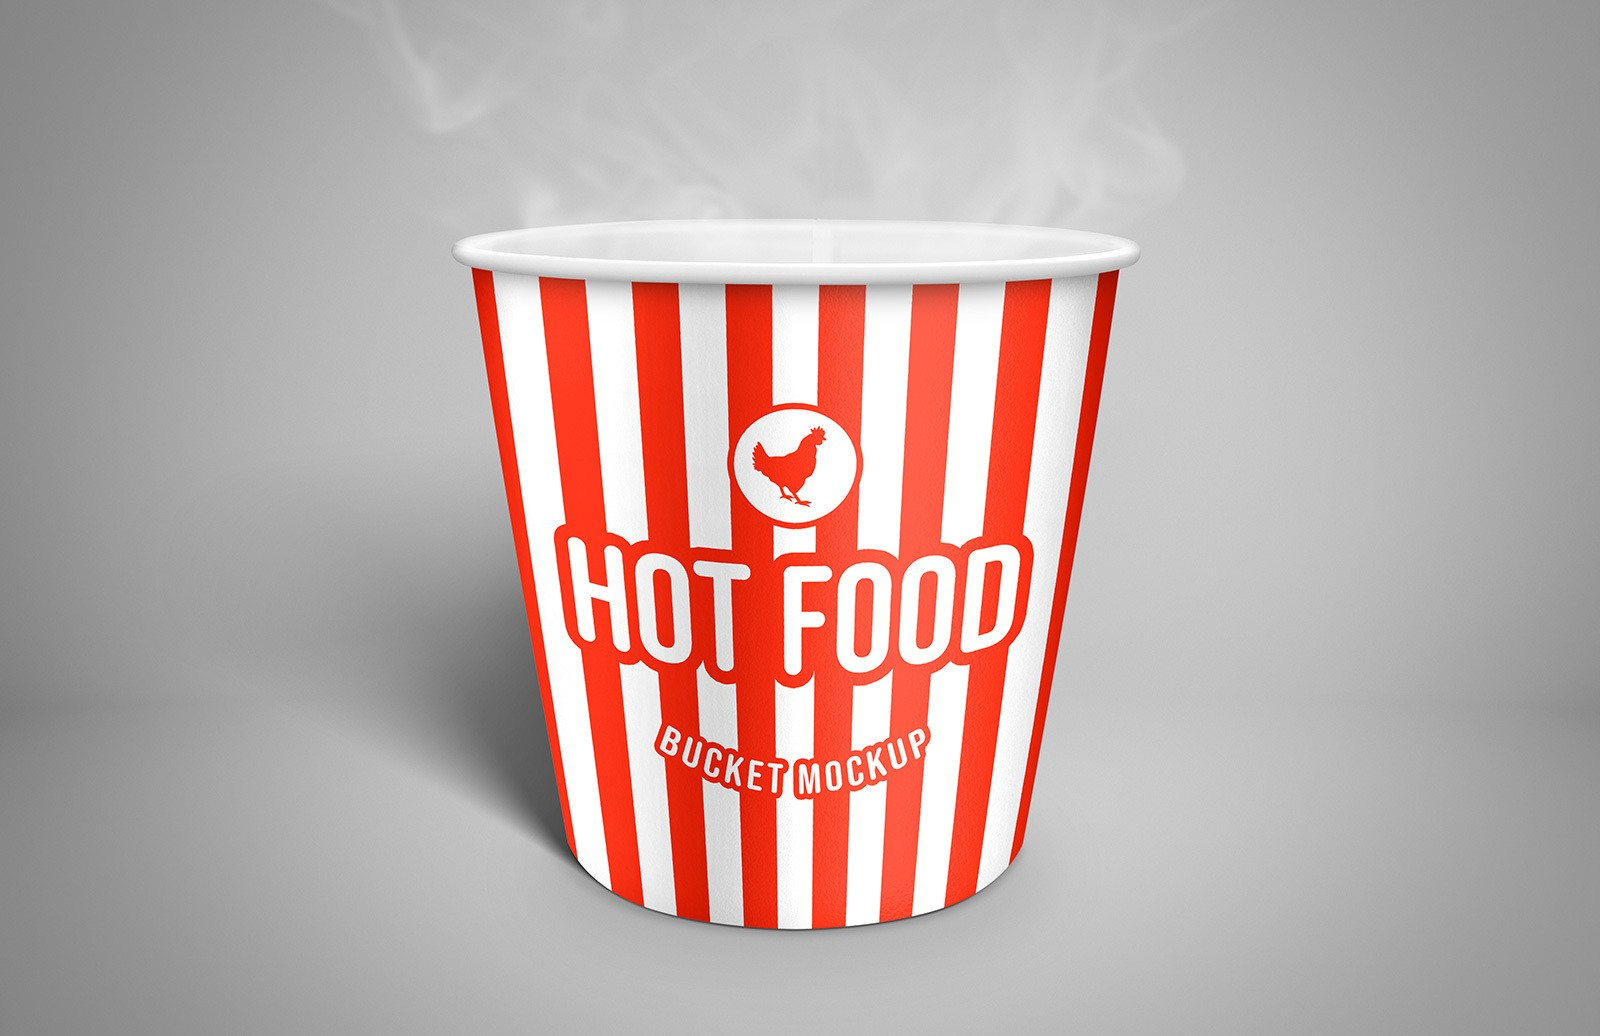 Hot Food Bucket Mockup Preview 1